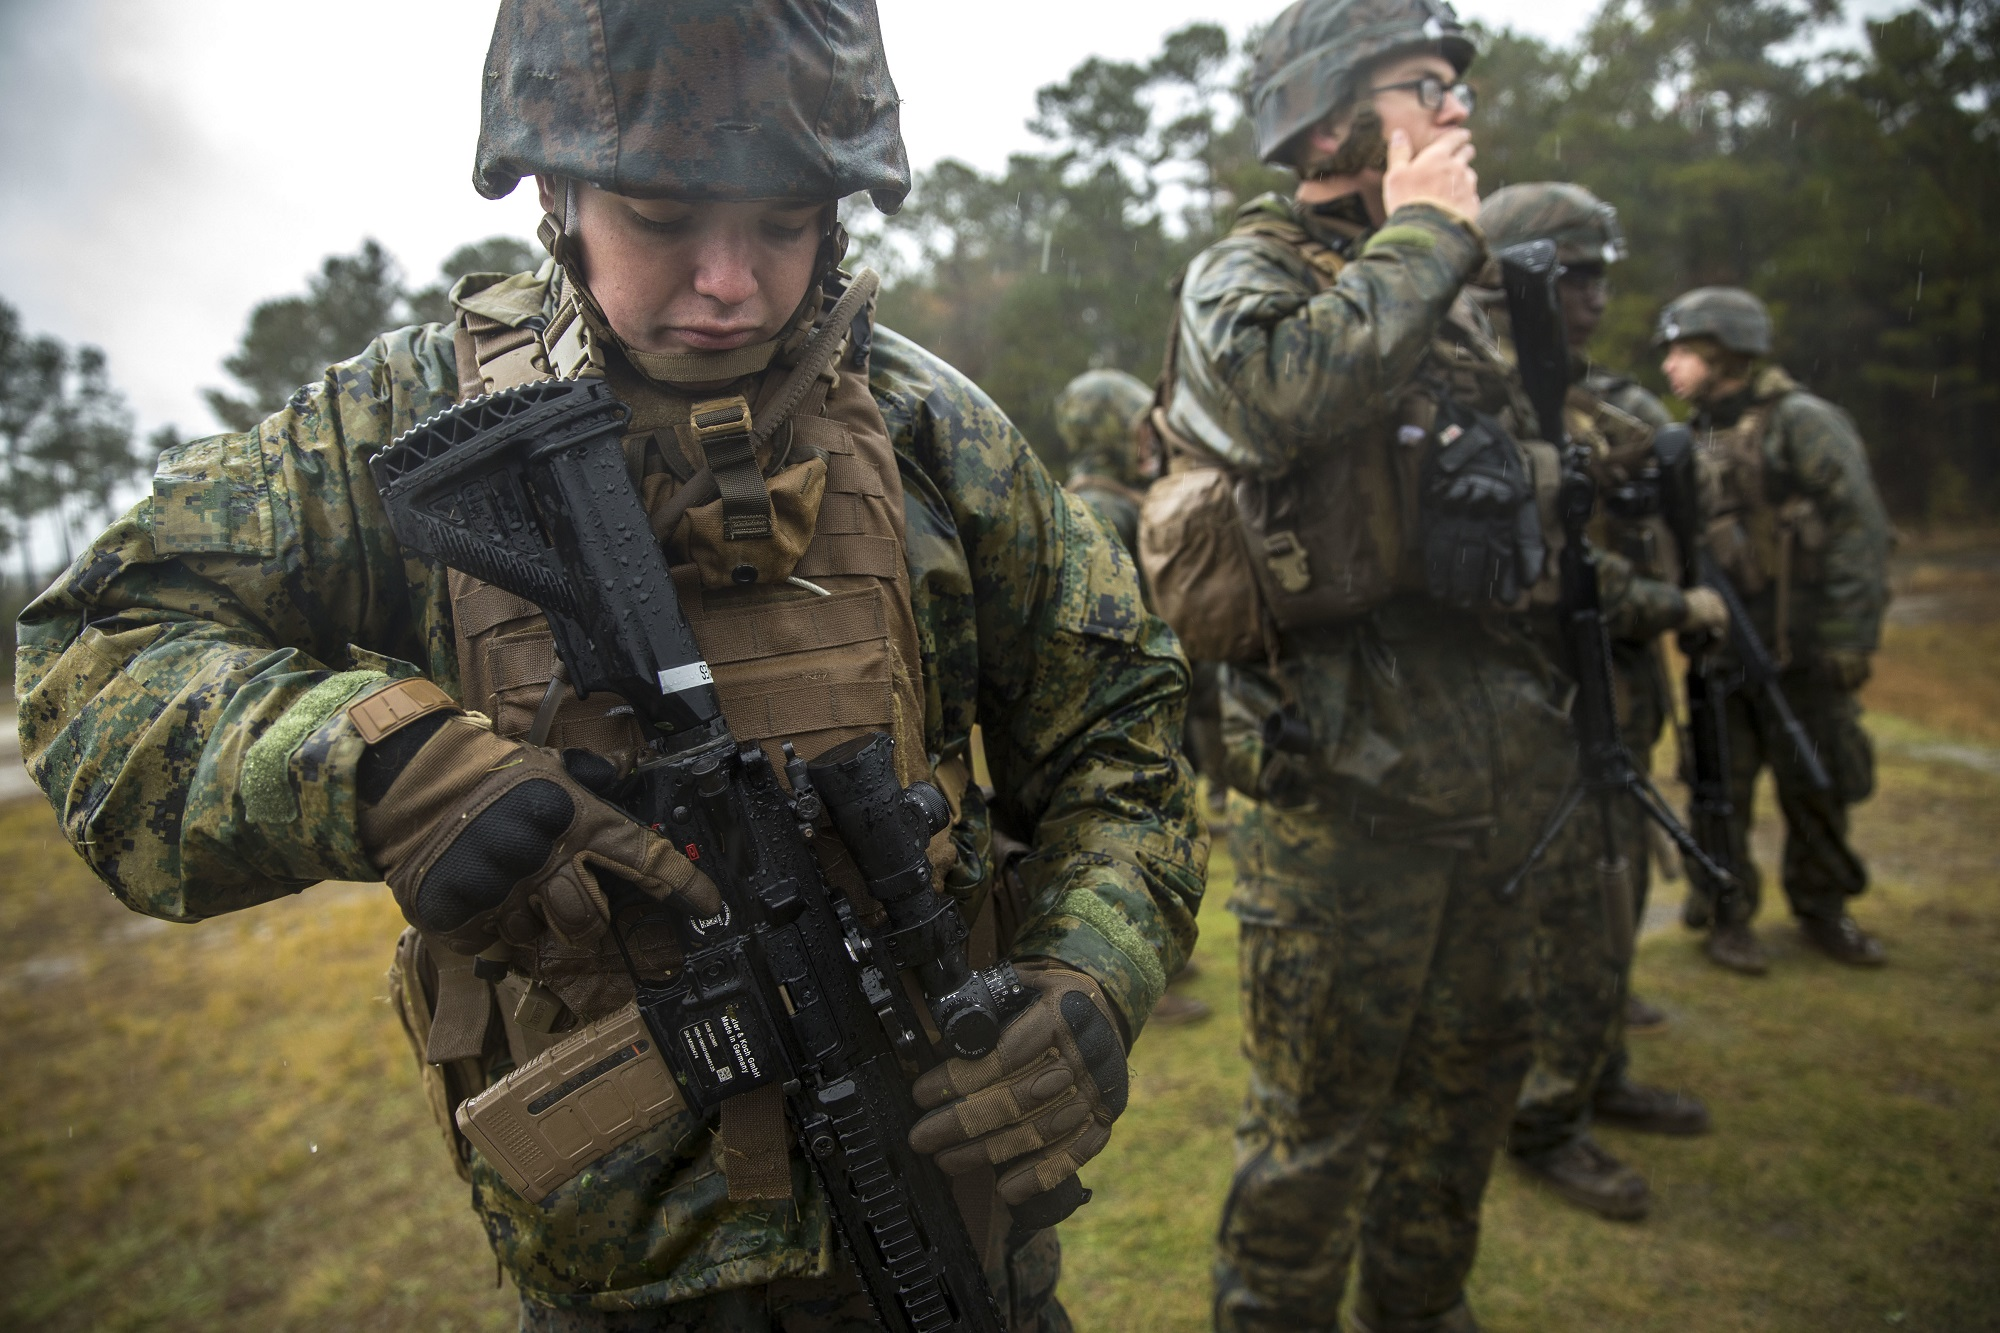 Congress could pump the brakes on fully funding the Corps' M27 purchases